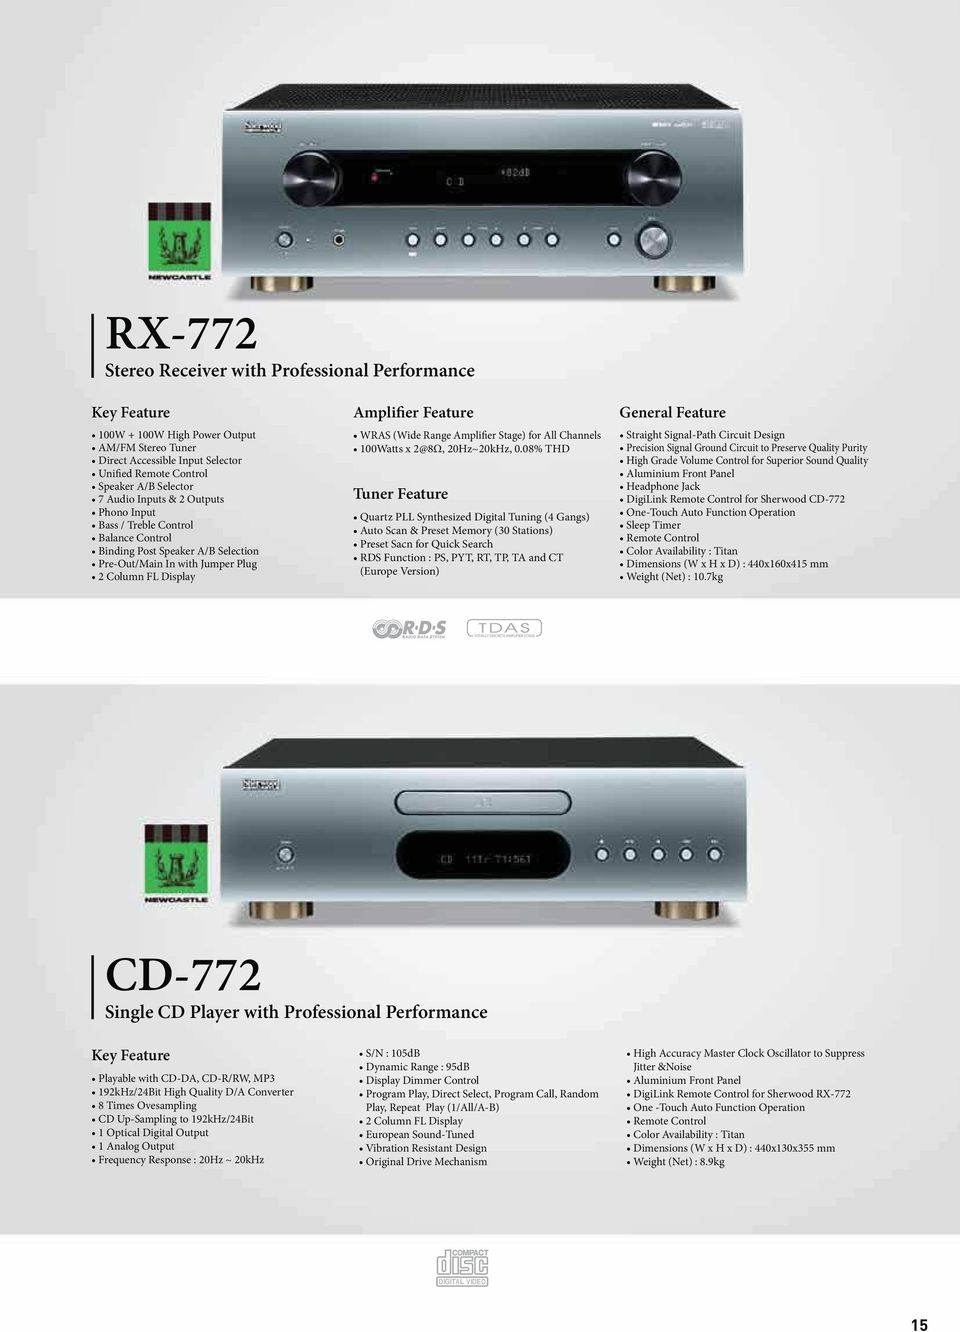 All Channels Tuner Feature (Europe Version) CD-772